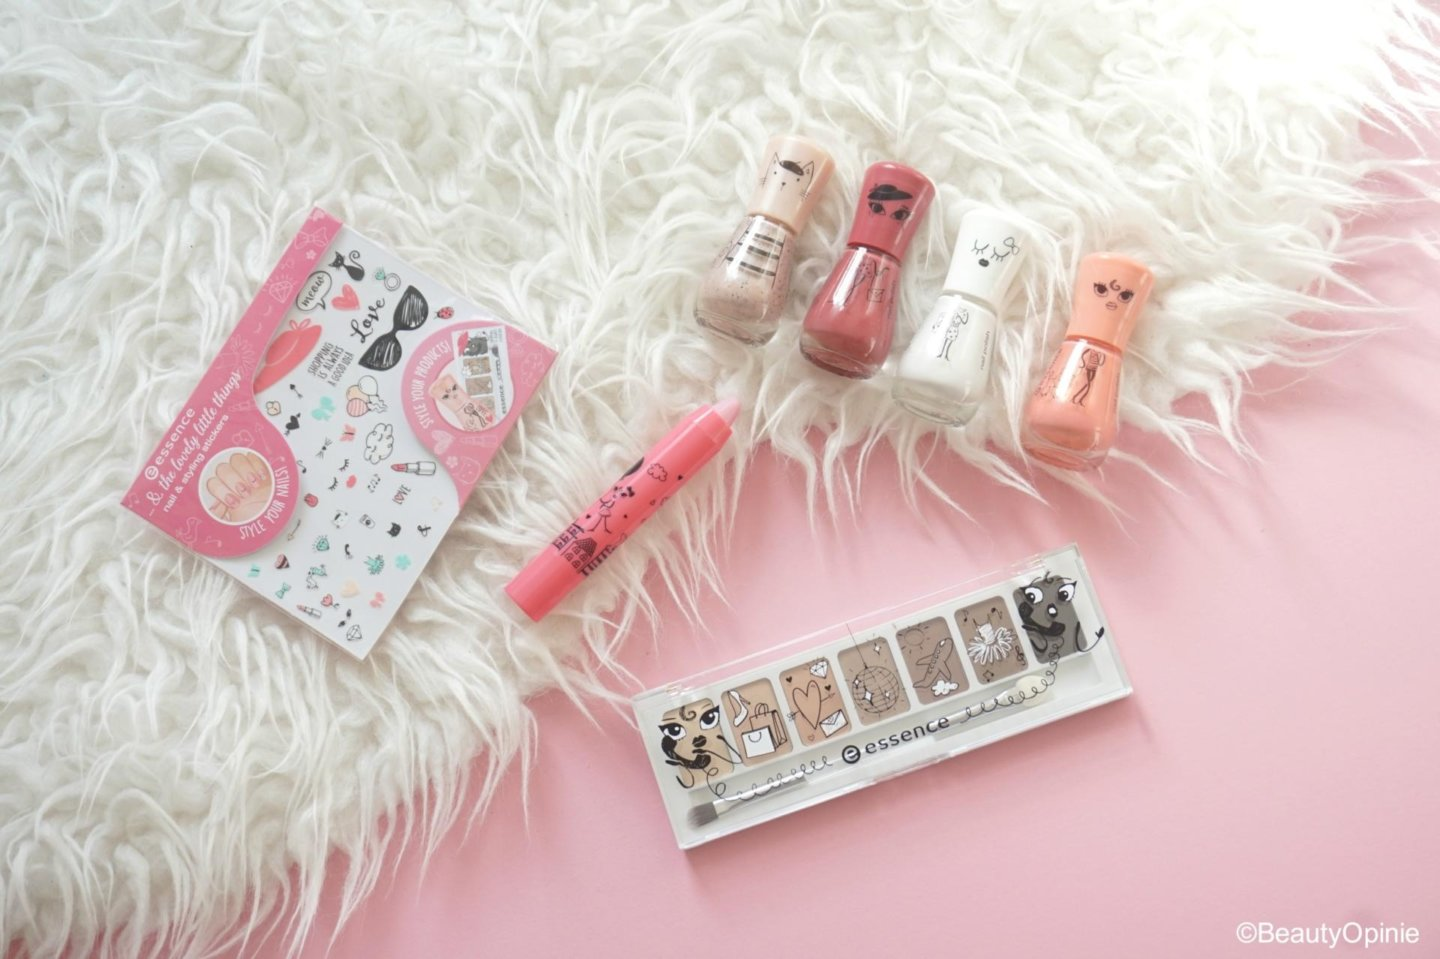 New! | De schattige Essence & the lovely little things collectie